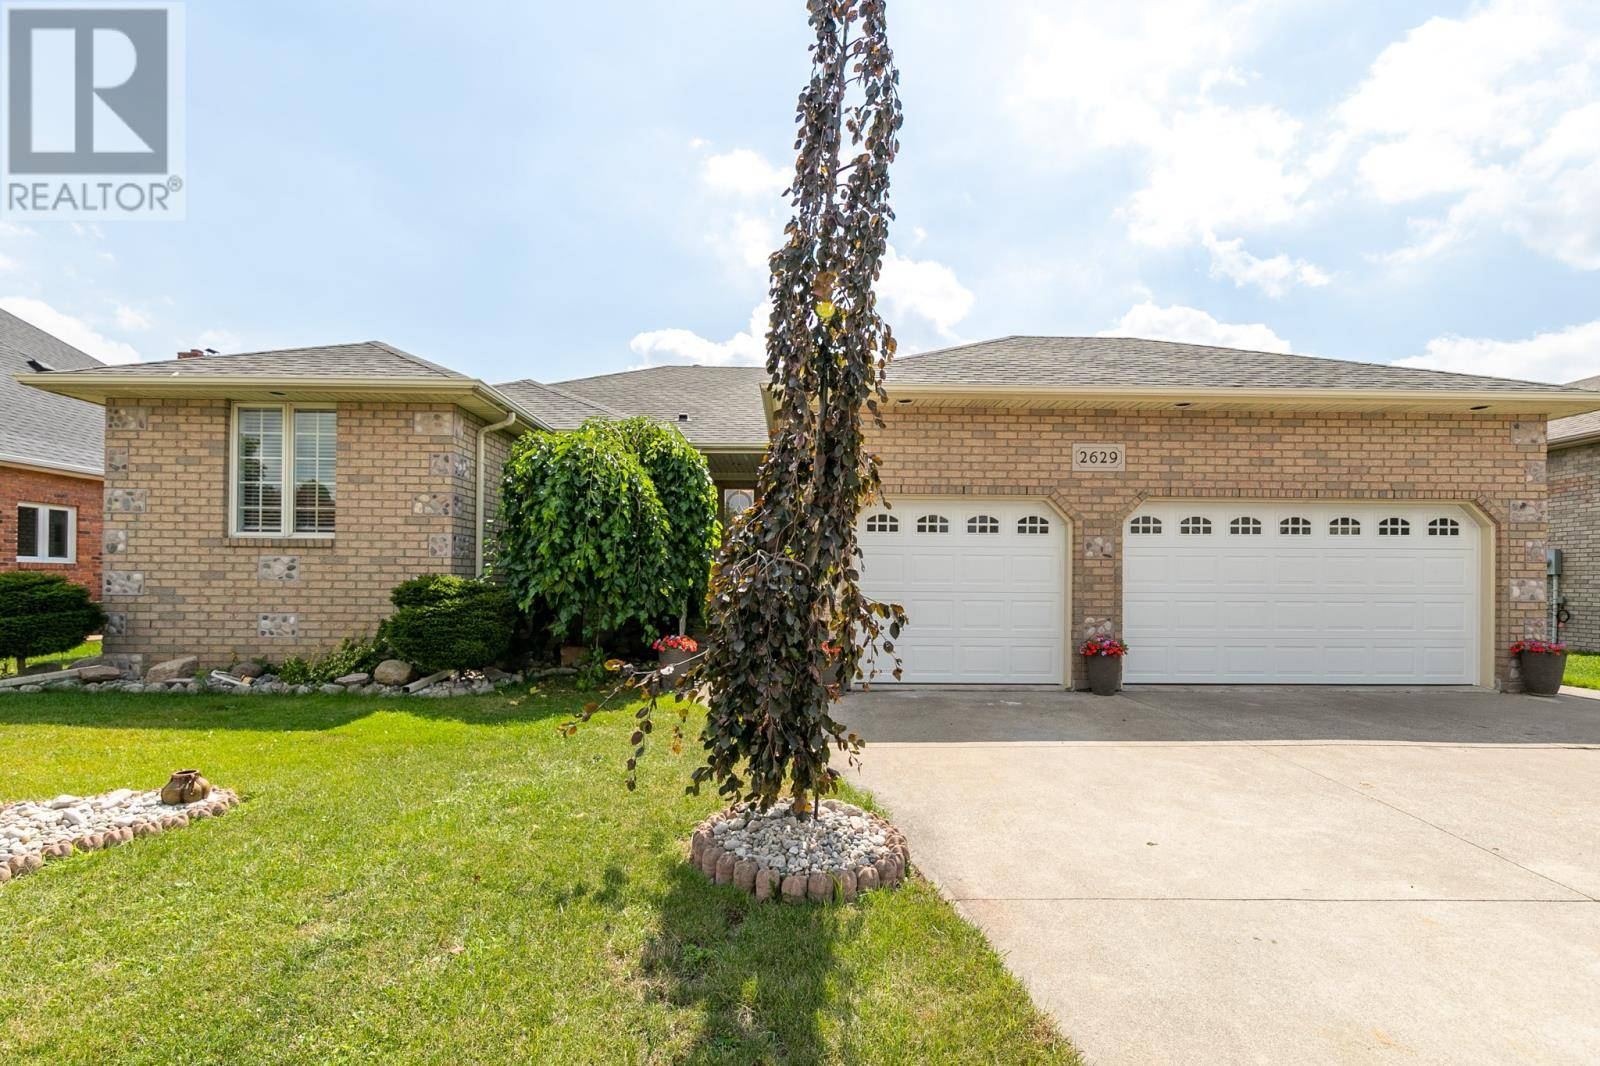 House for sale at 2629 Paul Martin Ct Windsor Ontario - MLS: 19024128